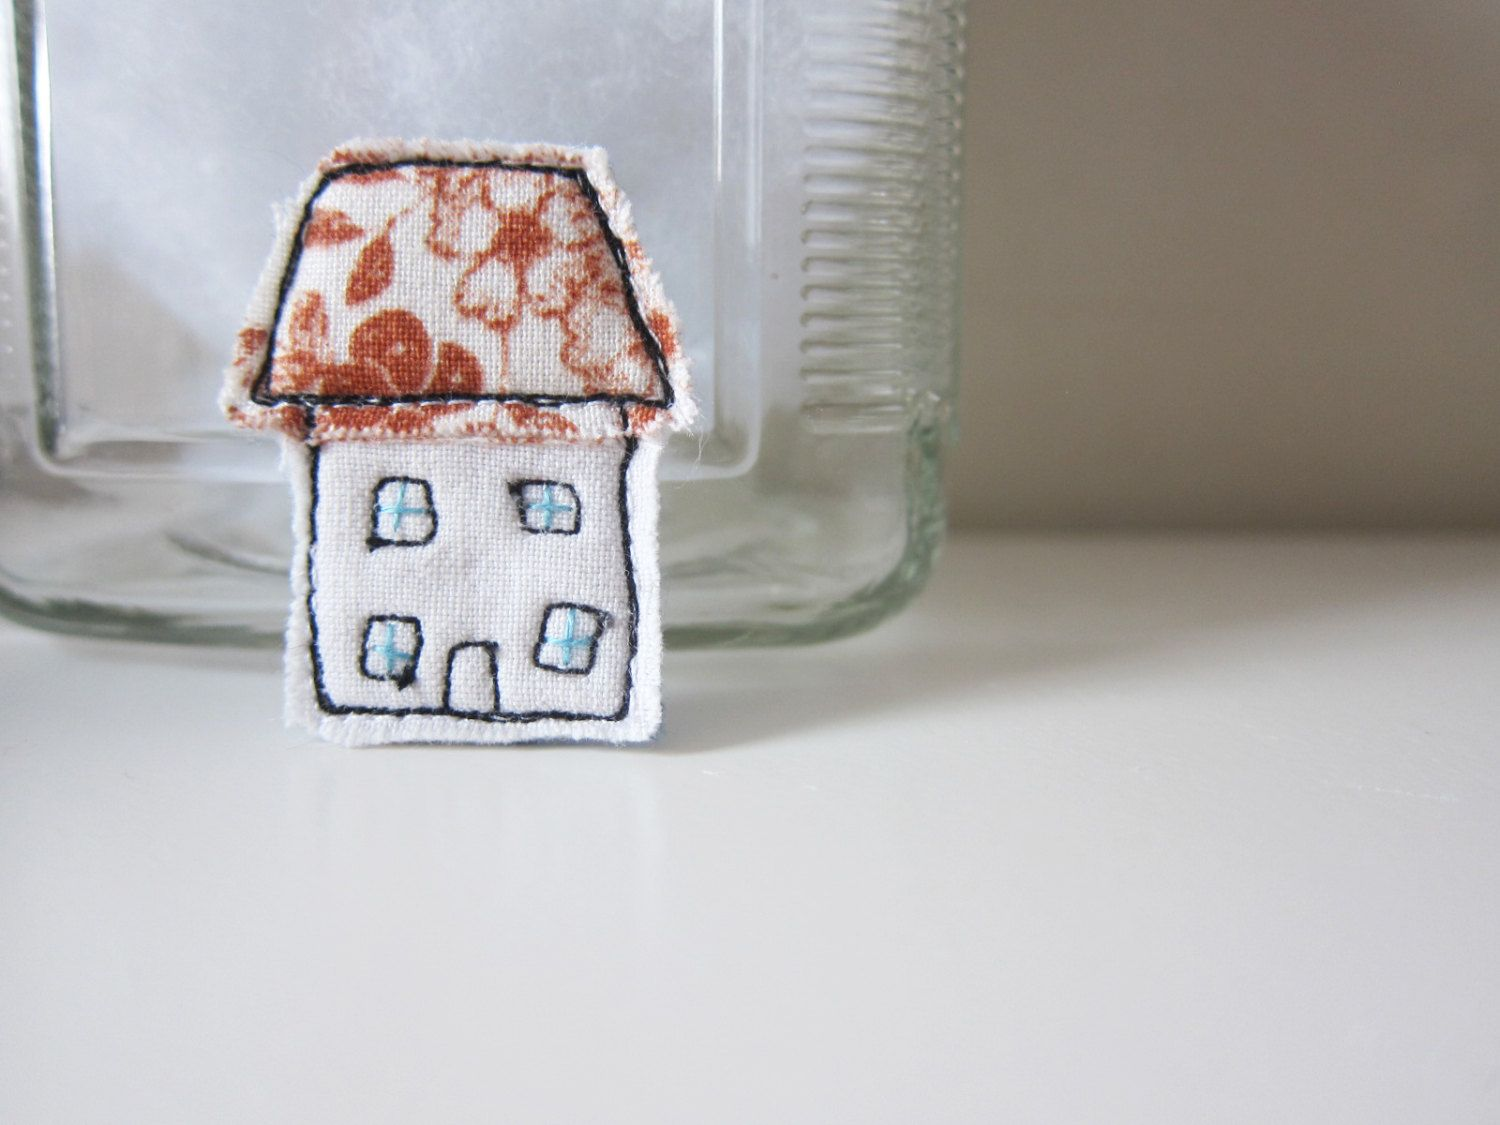 Free motion embroidery brooch : a little english cottage . handmade pin brooch embroidery . fabric art small house by LittleBirdOfParadise on Etsy https://www.etsy.com/listing/200197411/free-motion-embroidery-brooch-a-little